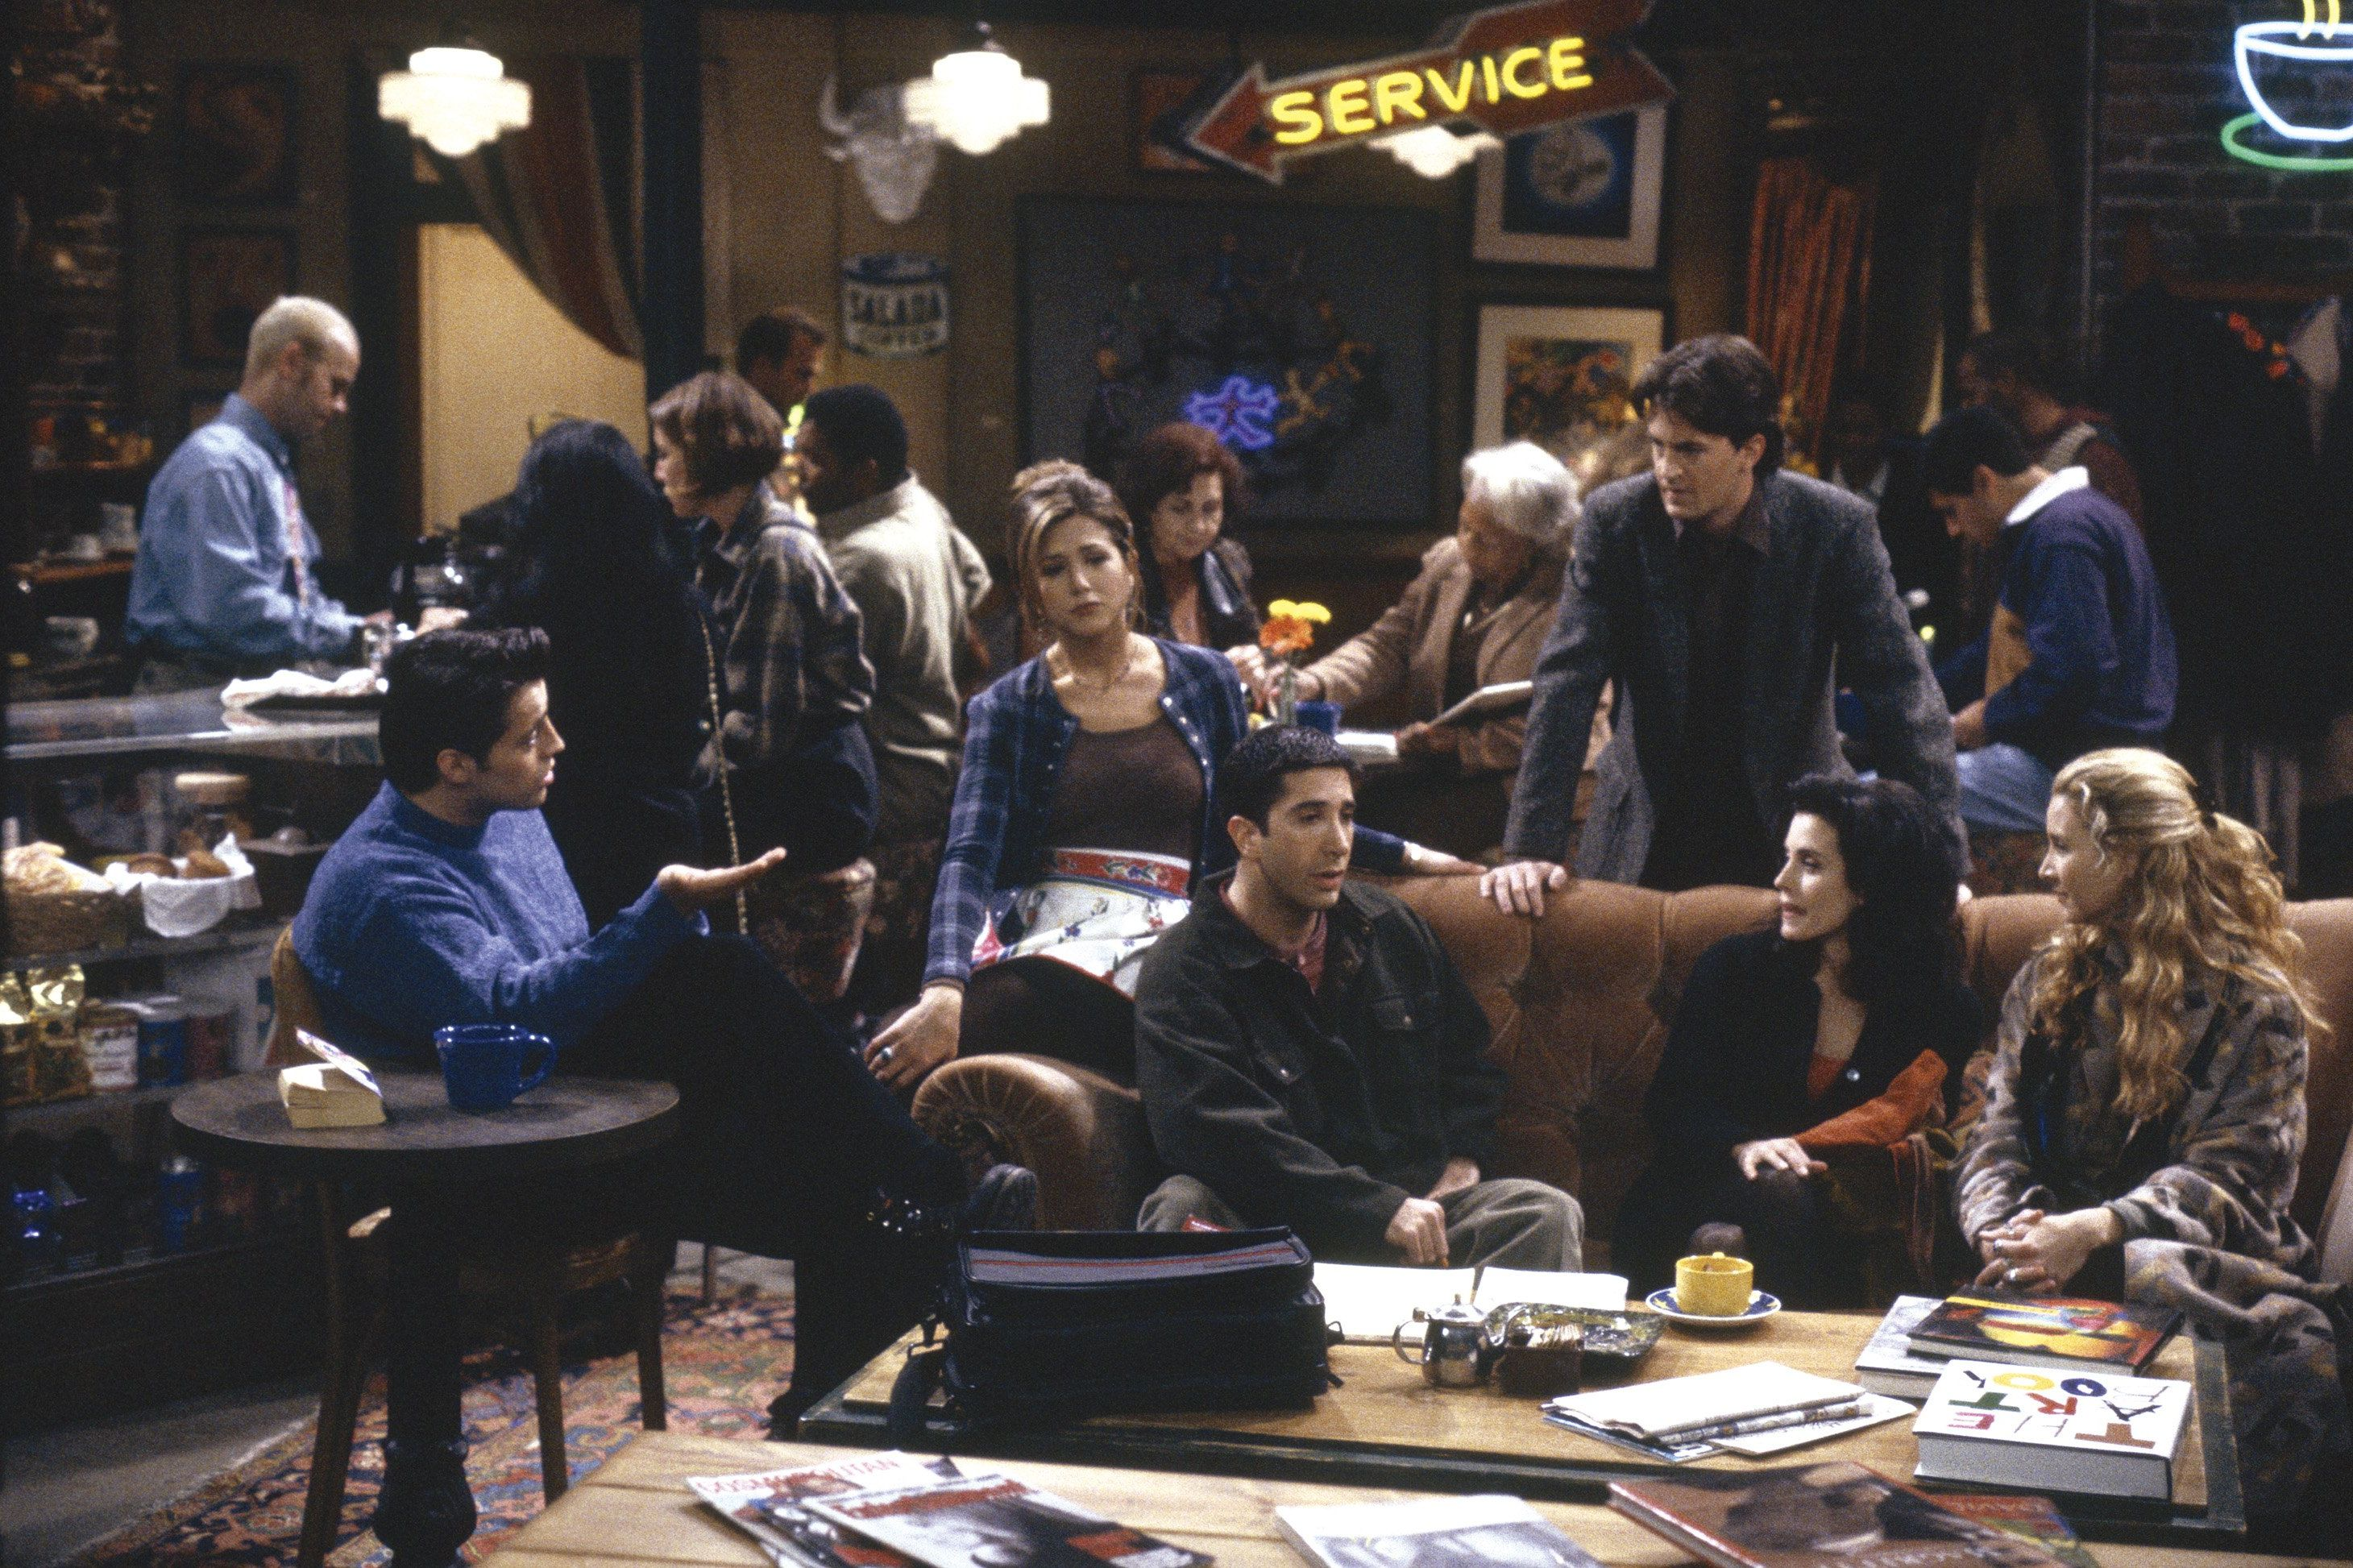 41 Photos From the Set of 'Friends' You've Probably Never Seen Before